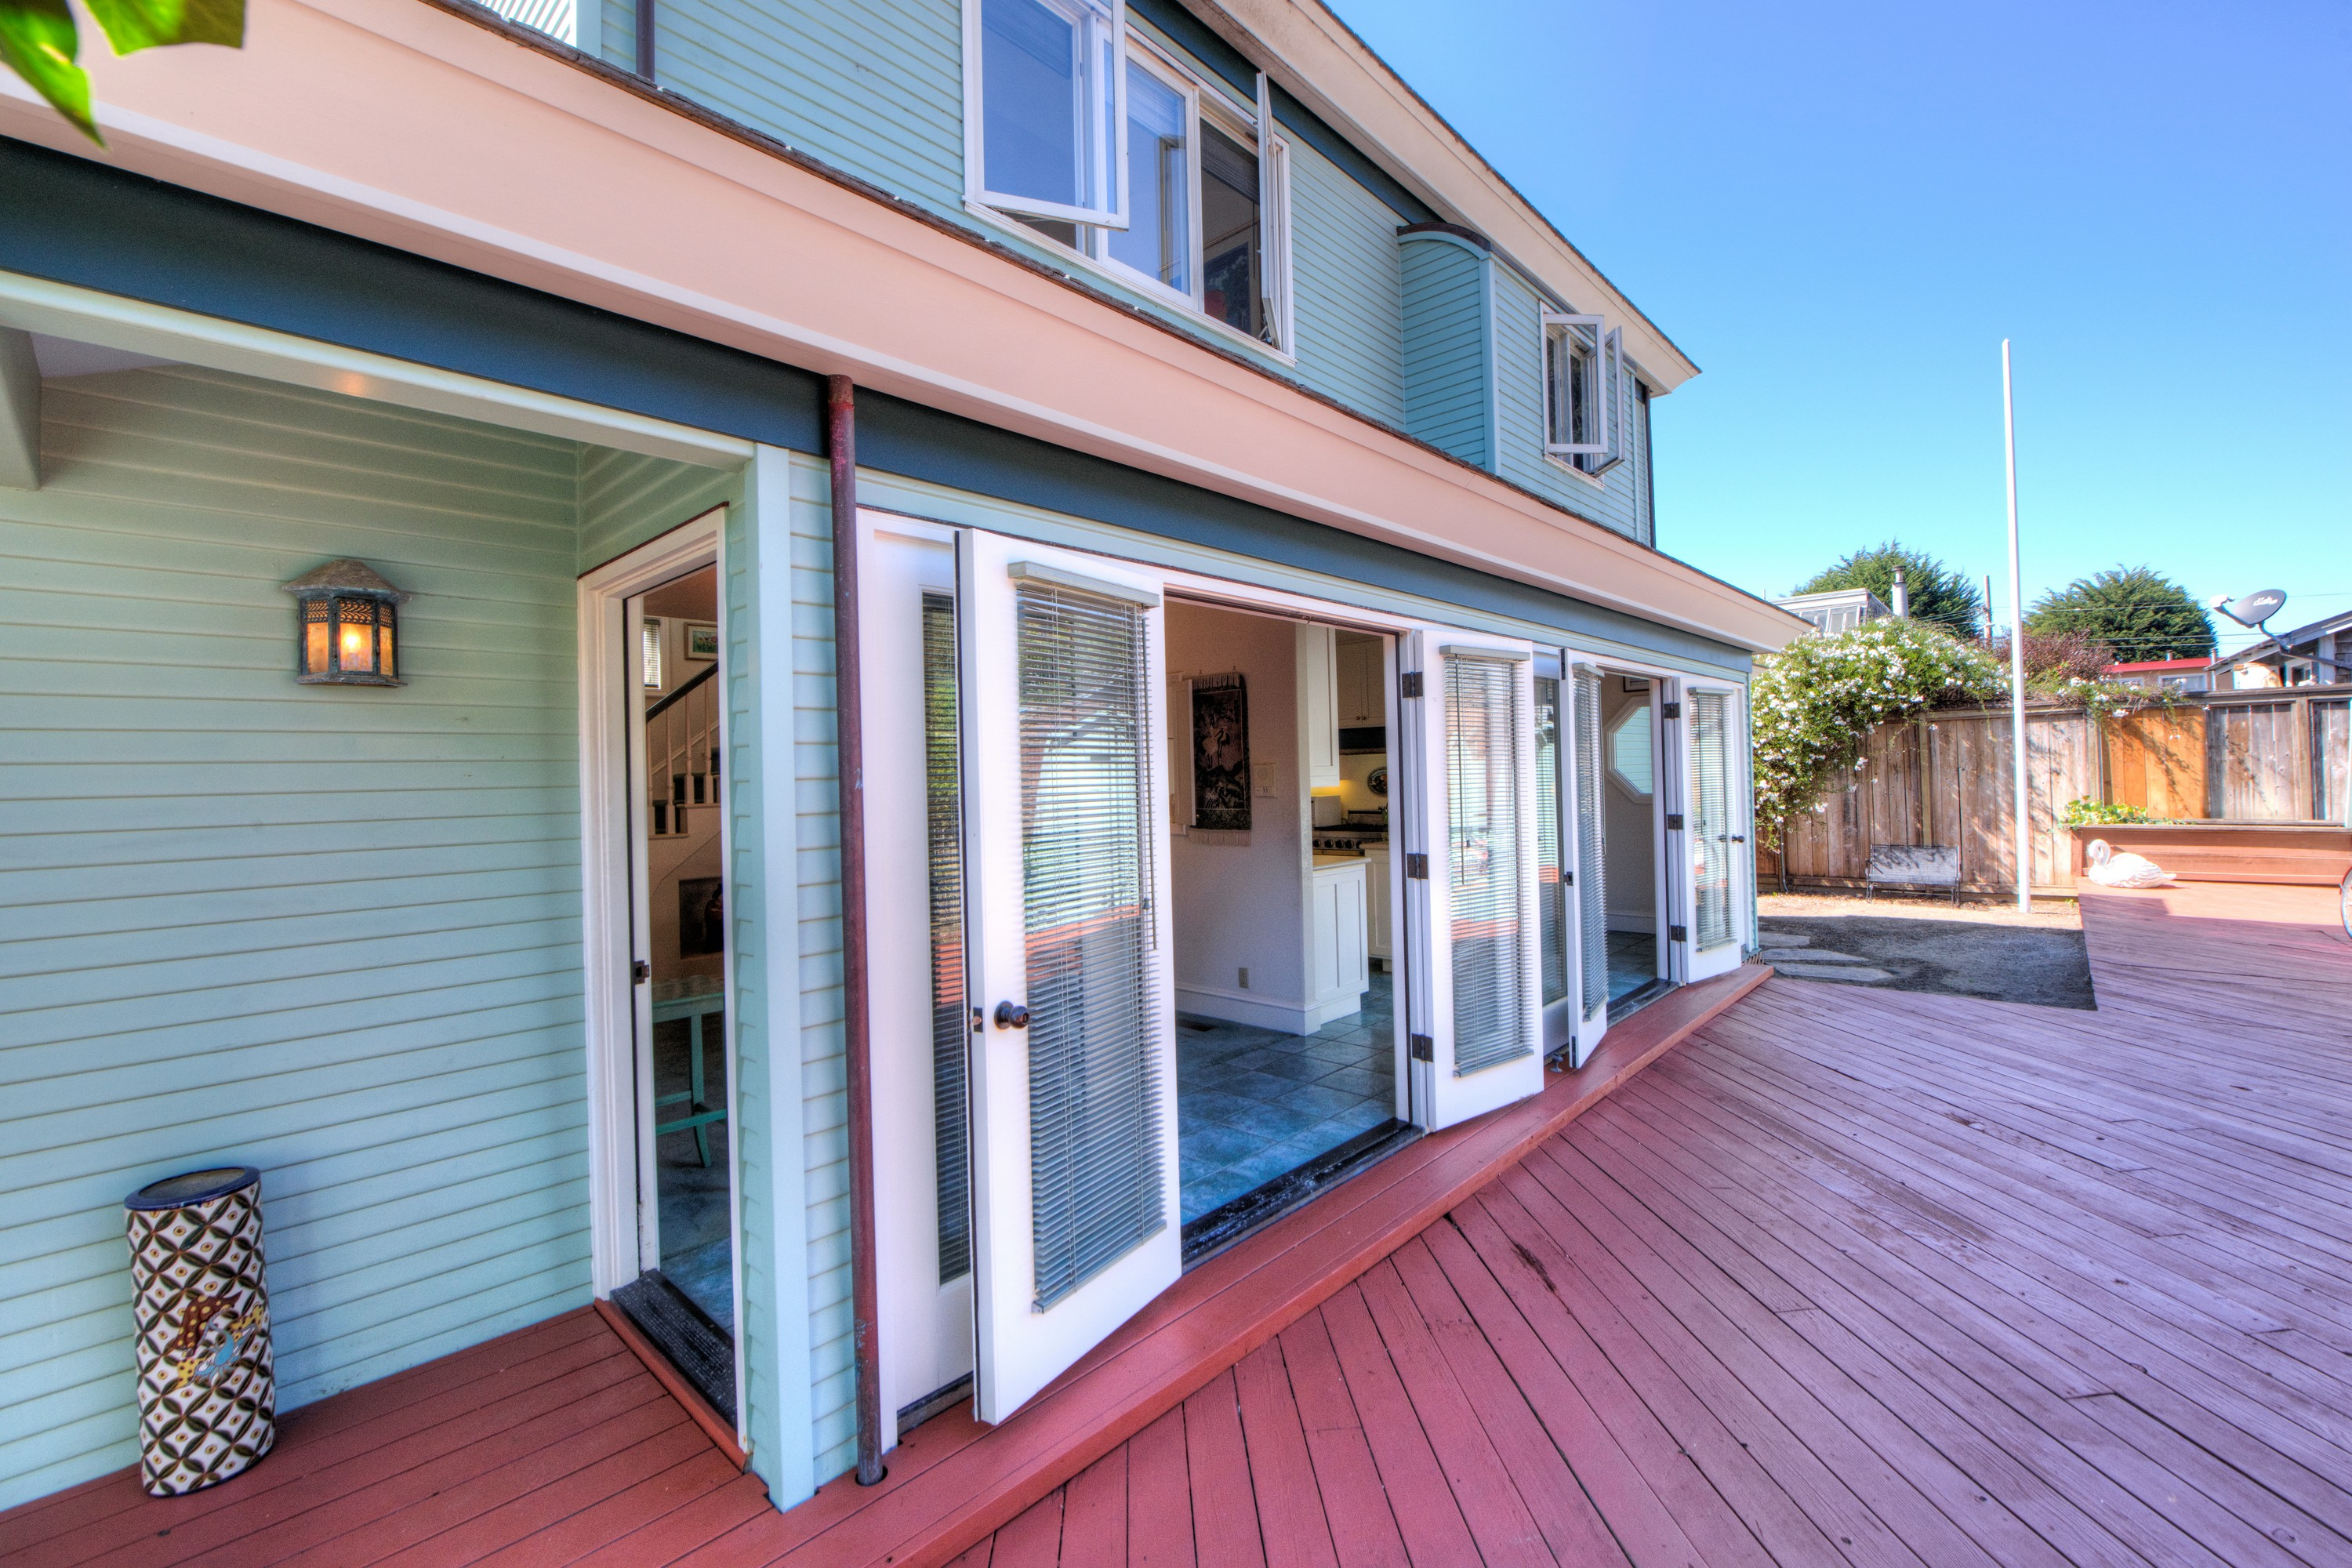 Single Family Home for Sale at Stinson Beach Custom Home Steps to Town 12 Calle Del Pradero Stinson Beach, 94970 United States